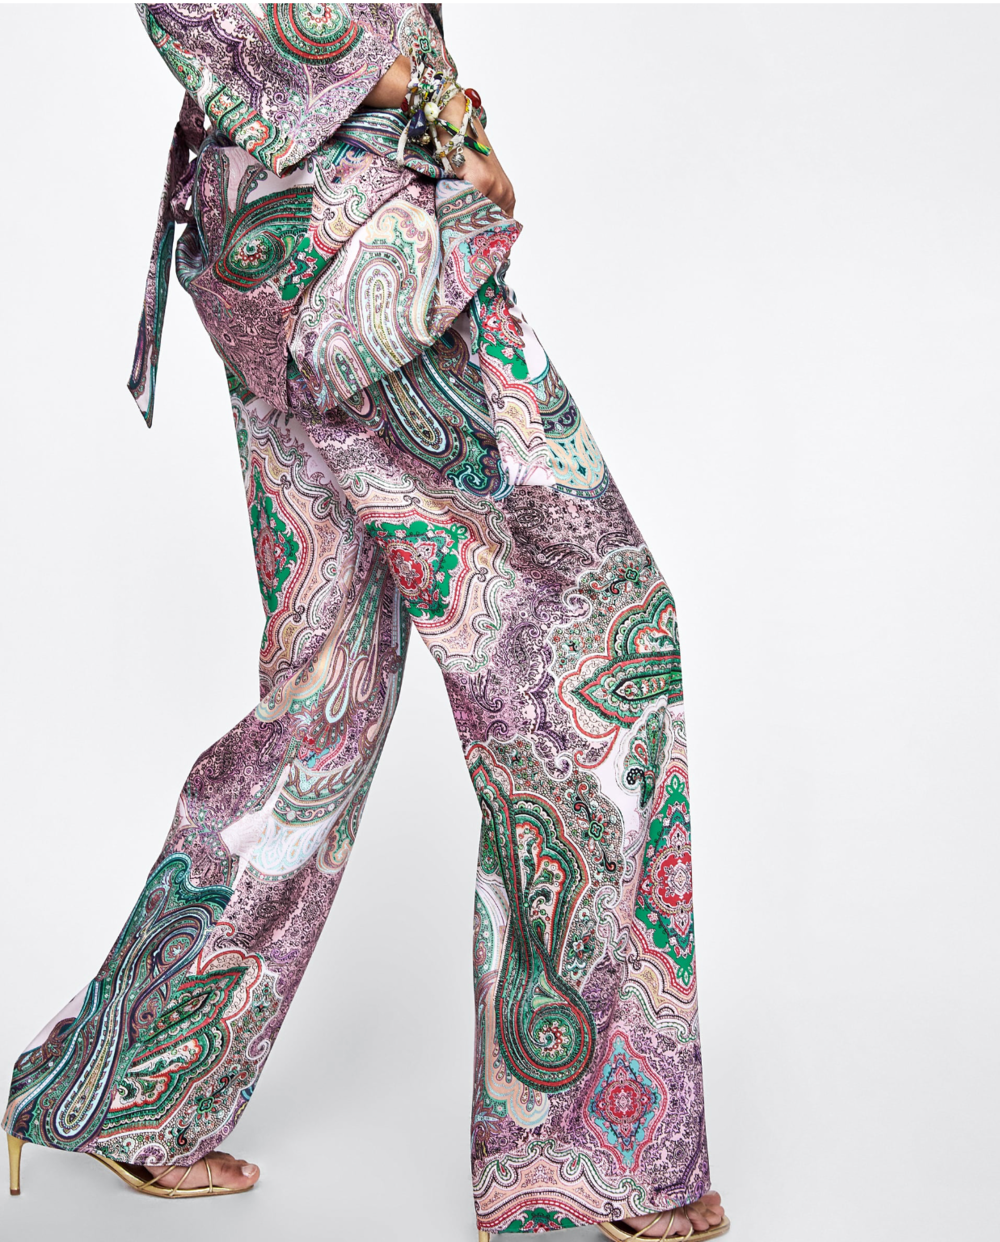 Photo credit: Zara. Check out their collection of  fun printed pants